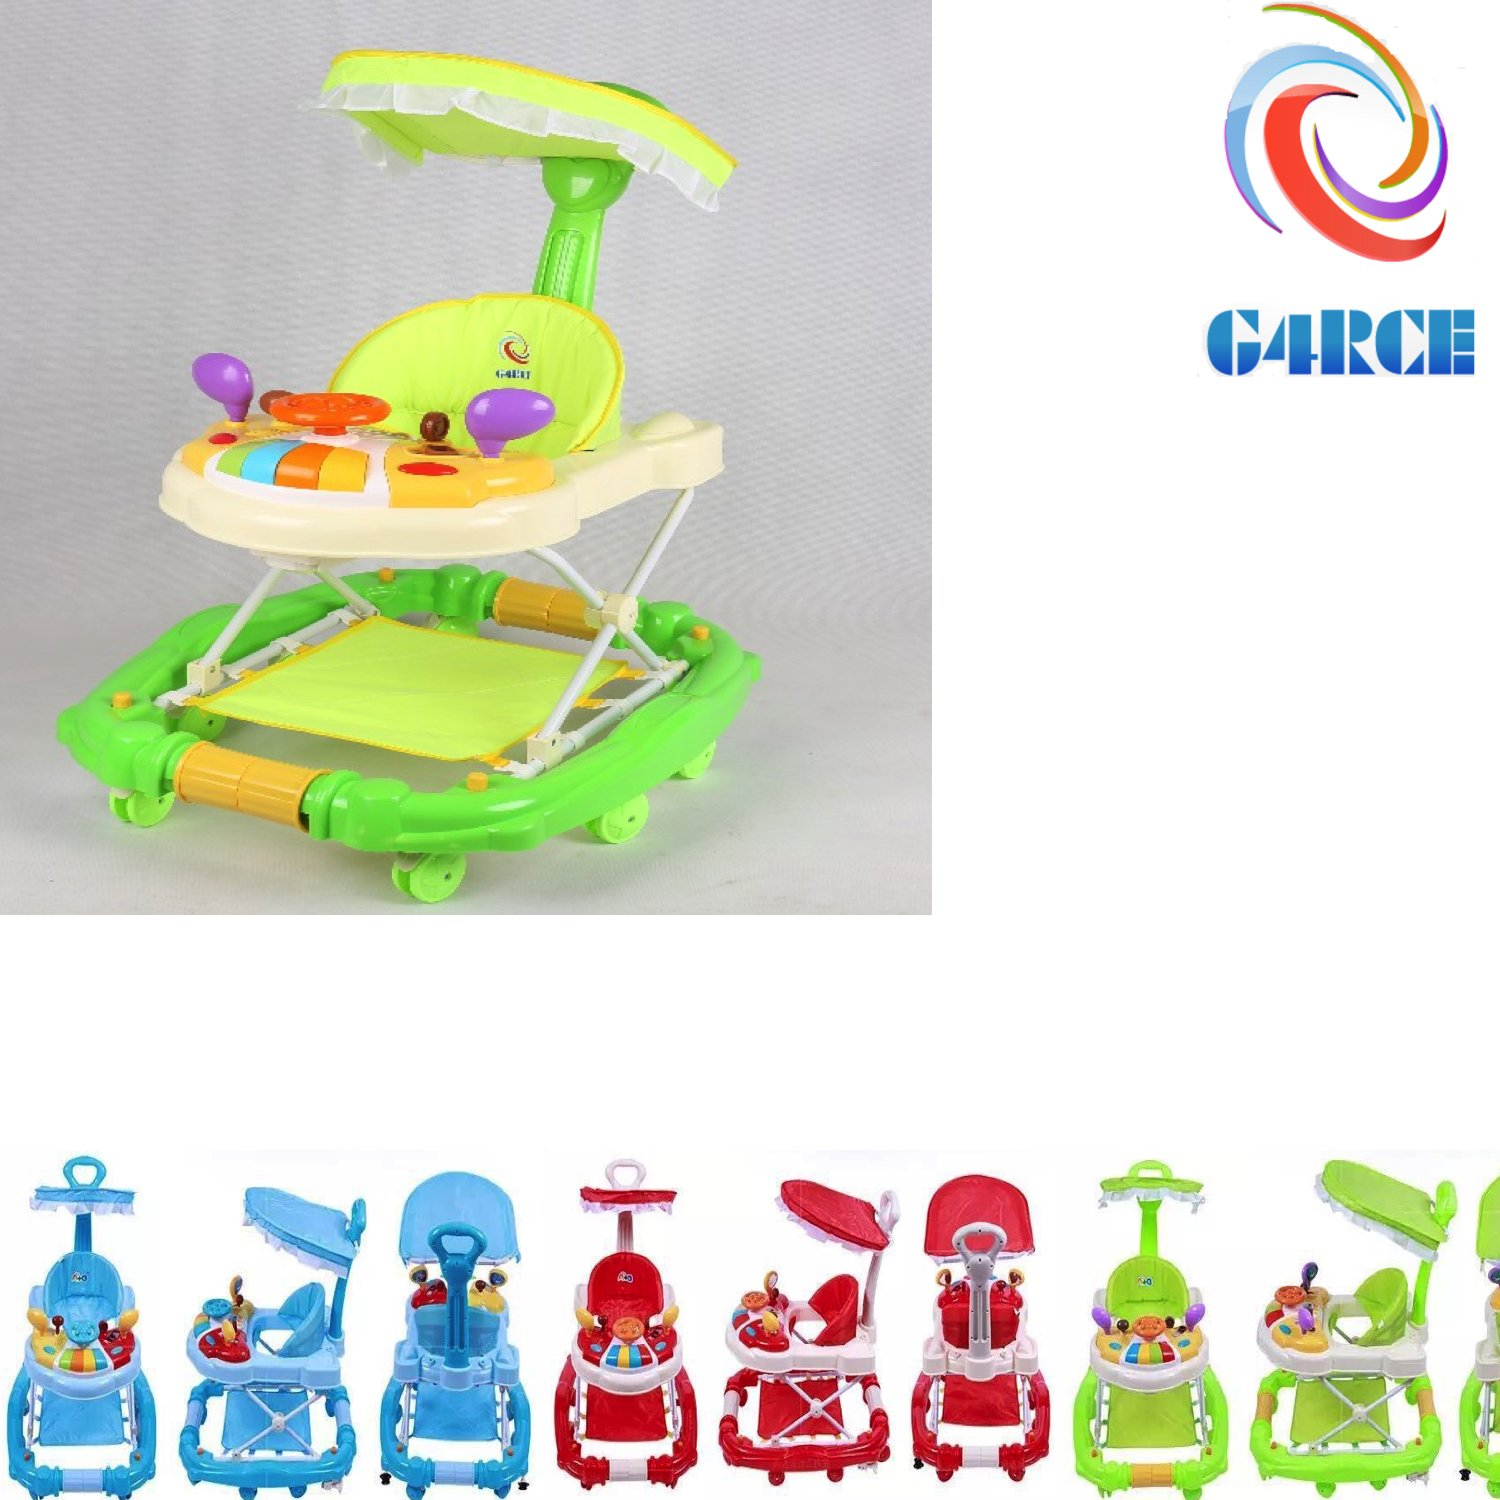 G4RCE® 3 in 1 Baby Walker Activity First Steps Car Theme Toy Adjustable Heights UK (Blue)